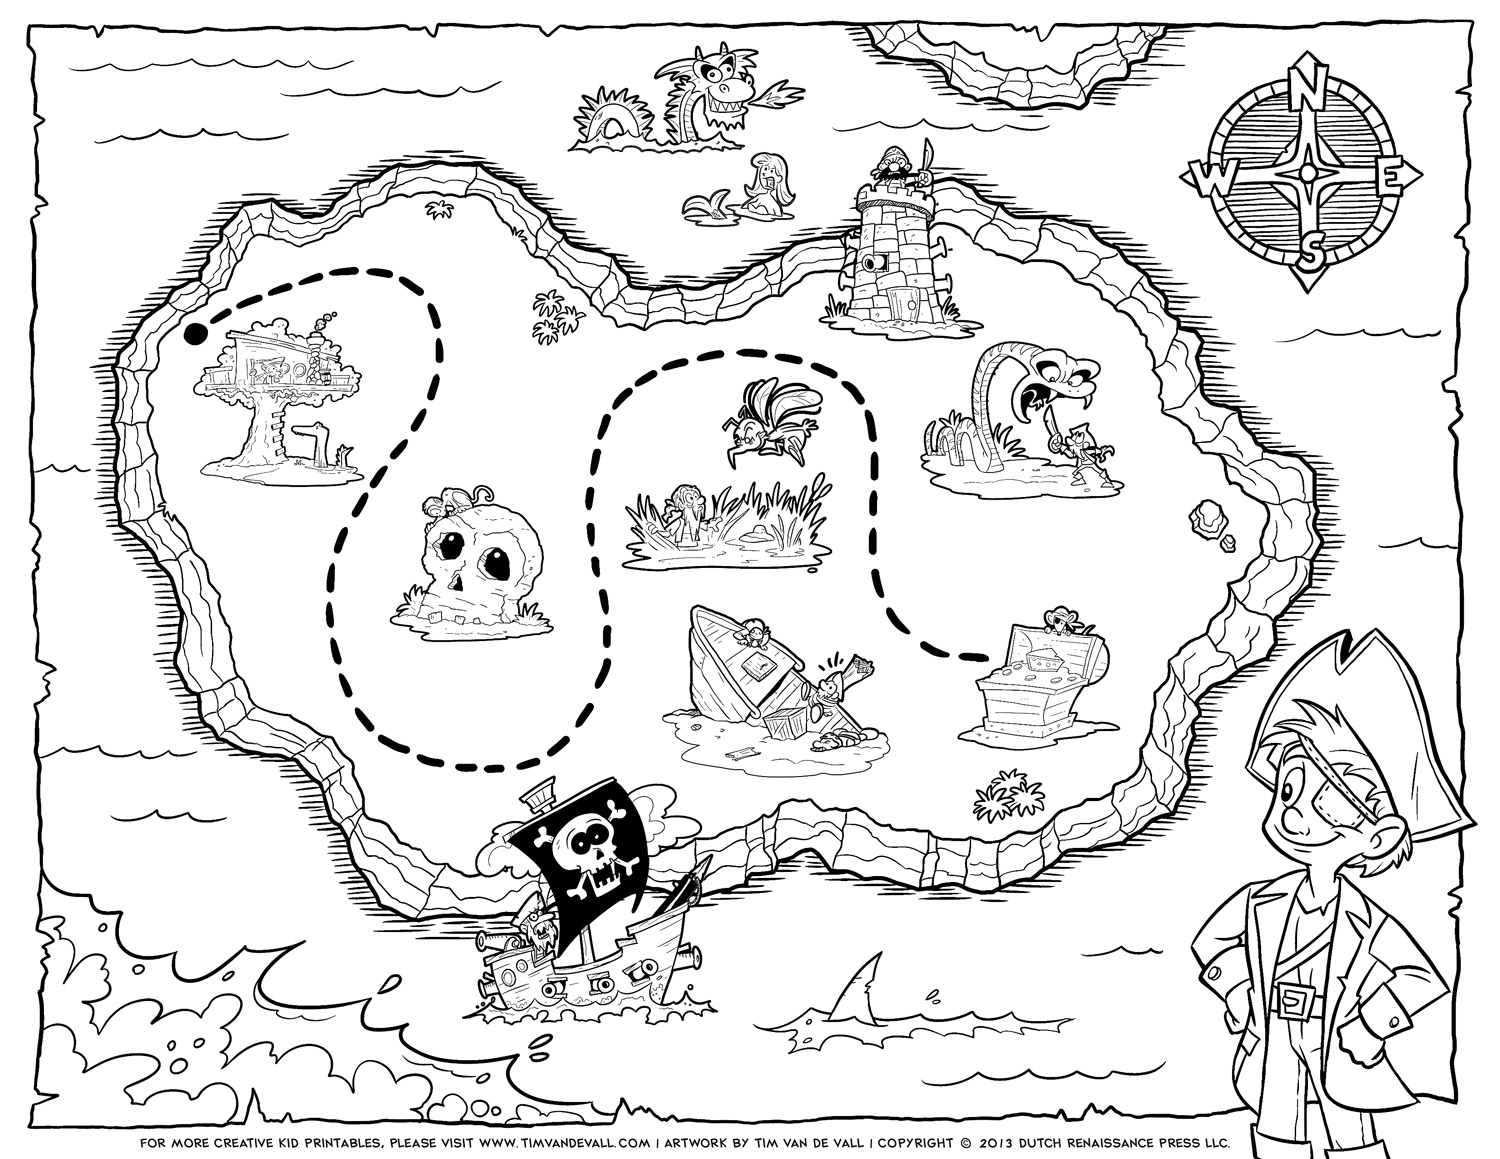 Tim van de vall comics printables for kids for Pirate coloring pages for preschool